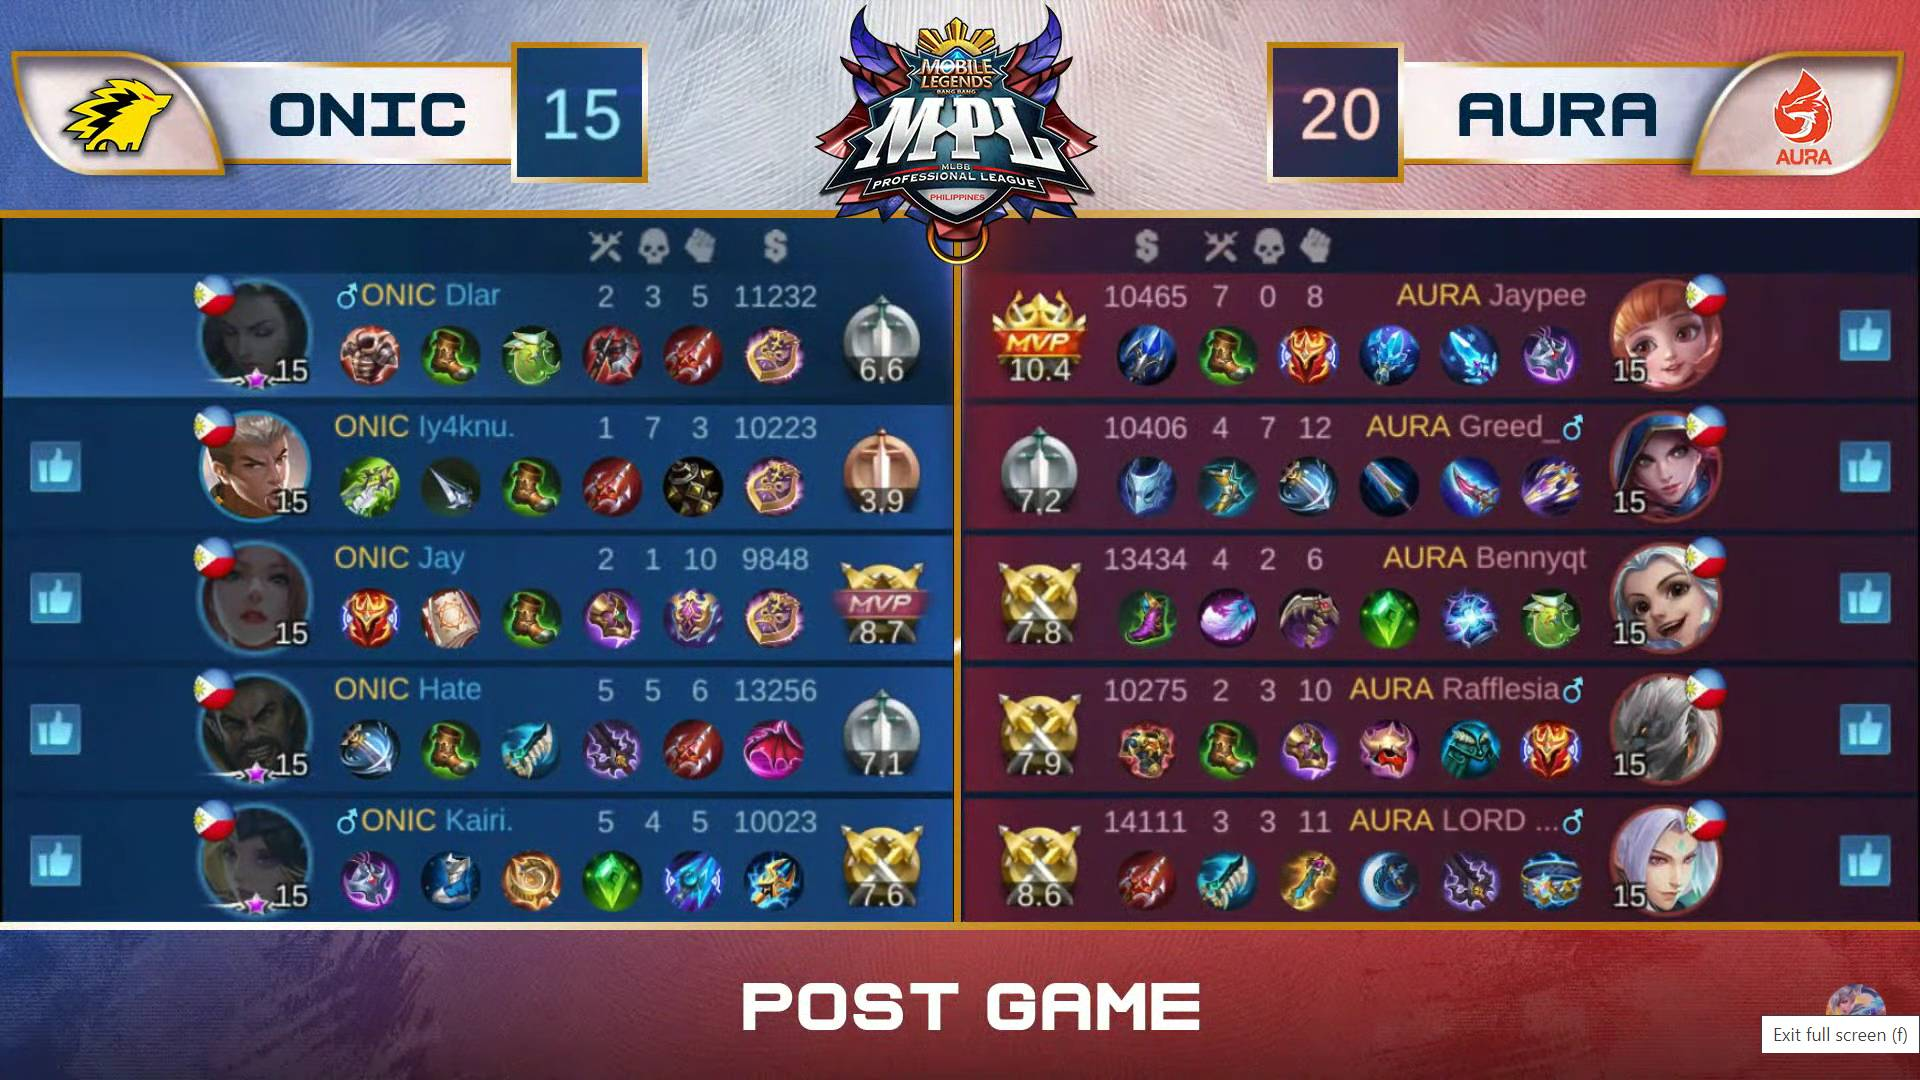 MPL-PH-7-Aura-def-ONIC-Game-2 Jaypee displays new facet, leads Aura past rivals ONIC in MPL PH ESports Mobile Legends MPL-PH News  - philippine sports news